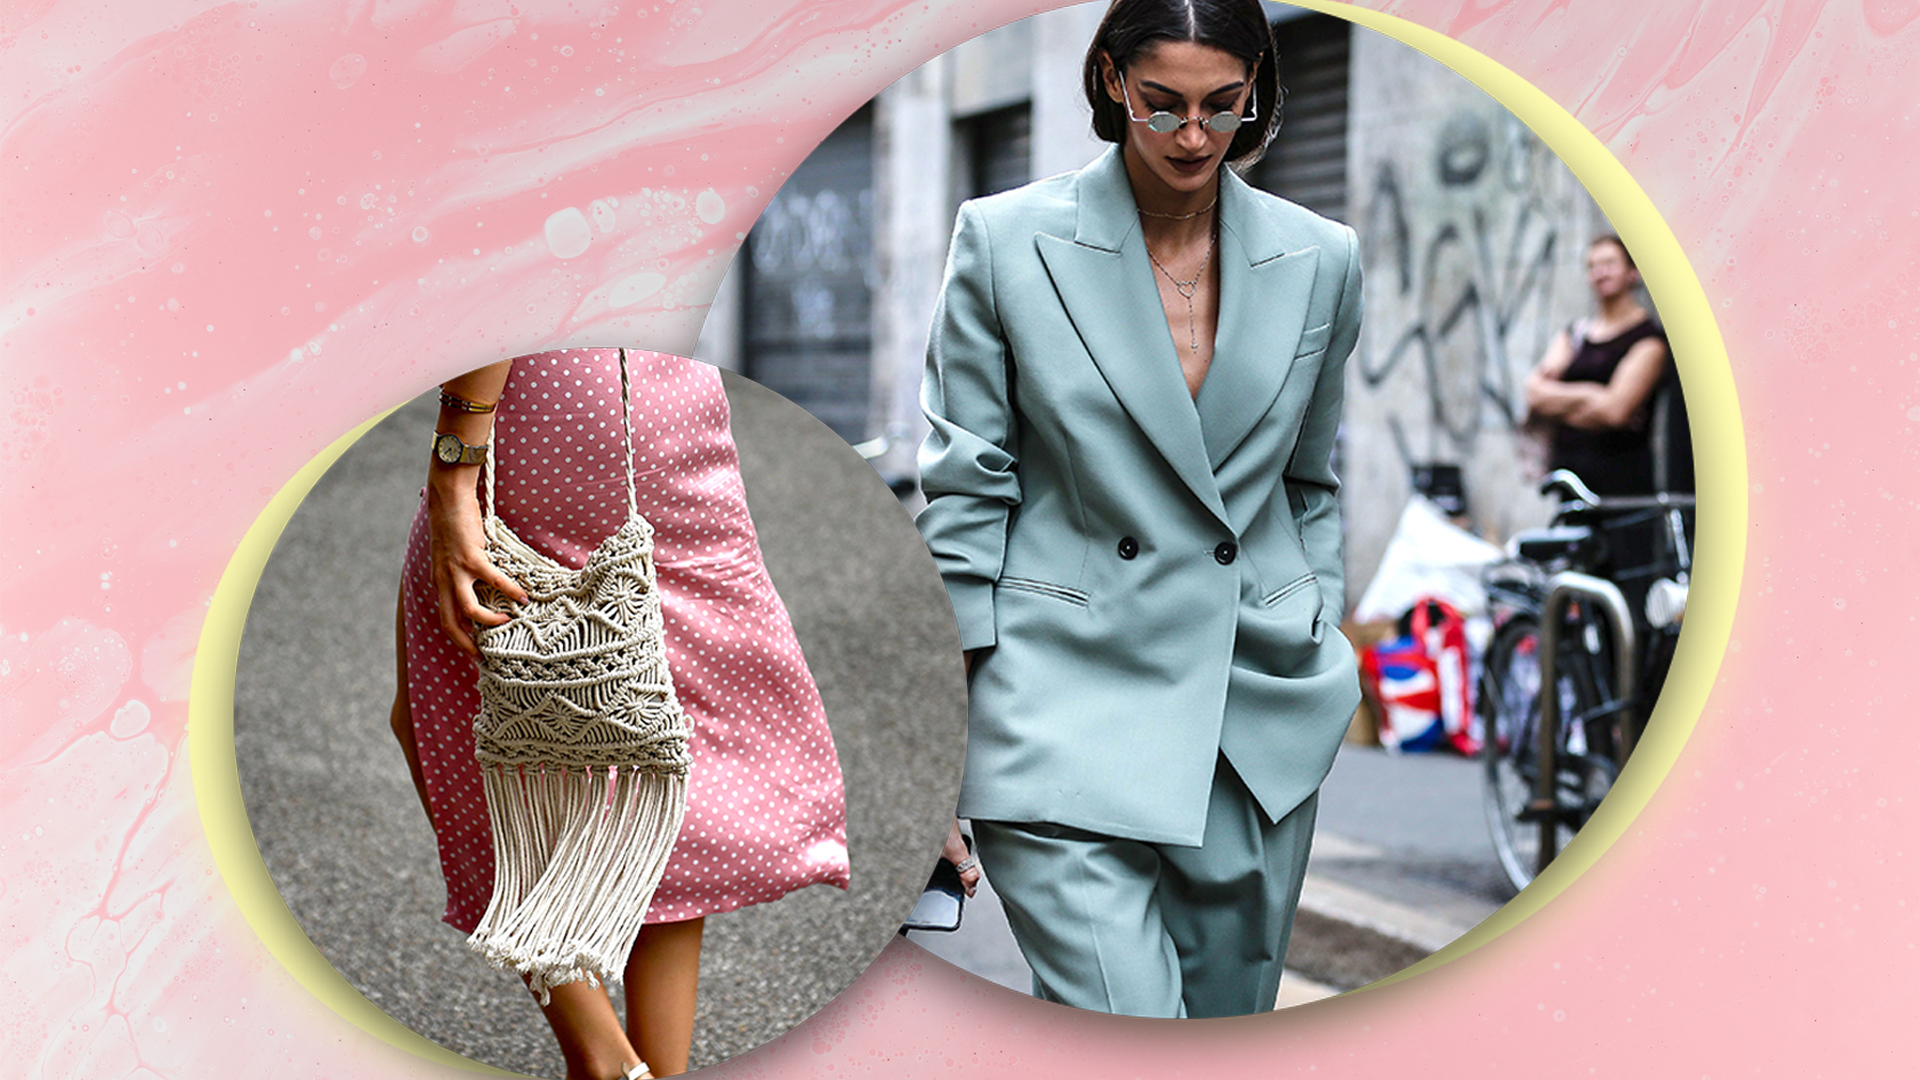 The Top 10 Fashion Trends For Summer You Don't Want To Sleep On